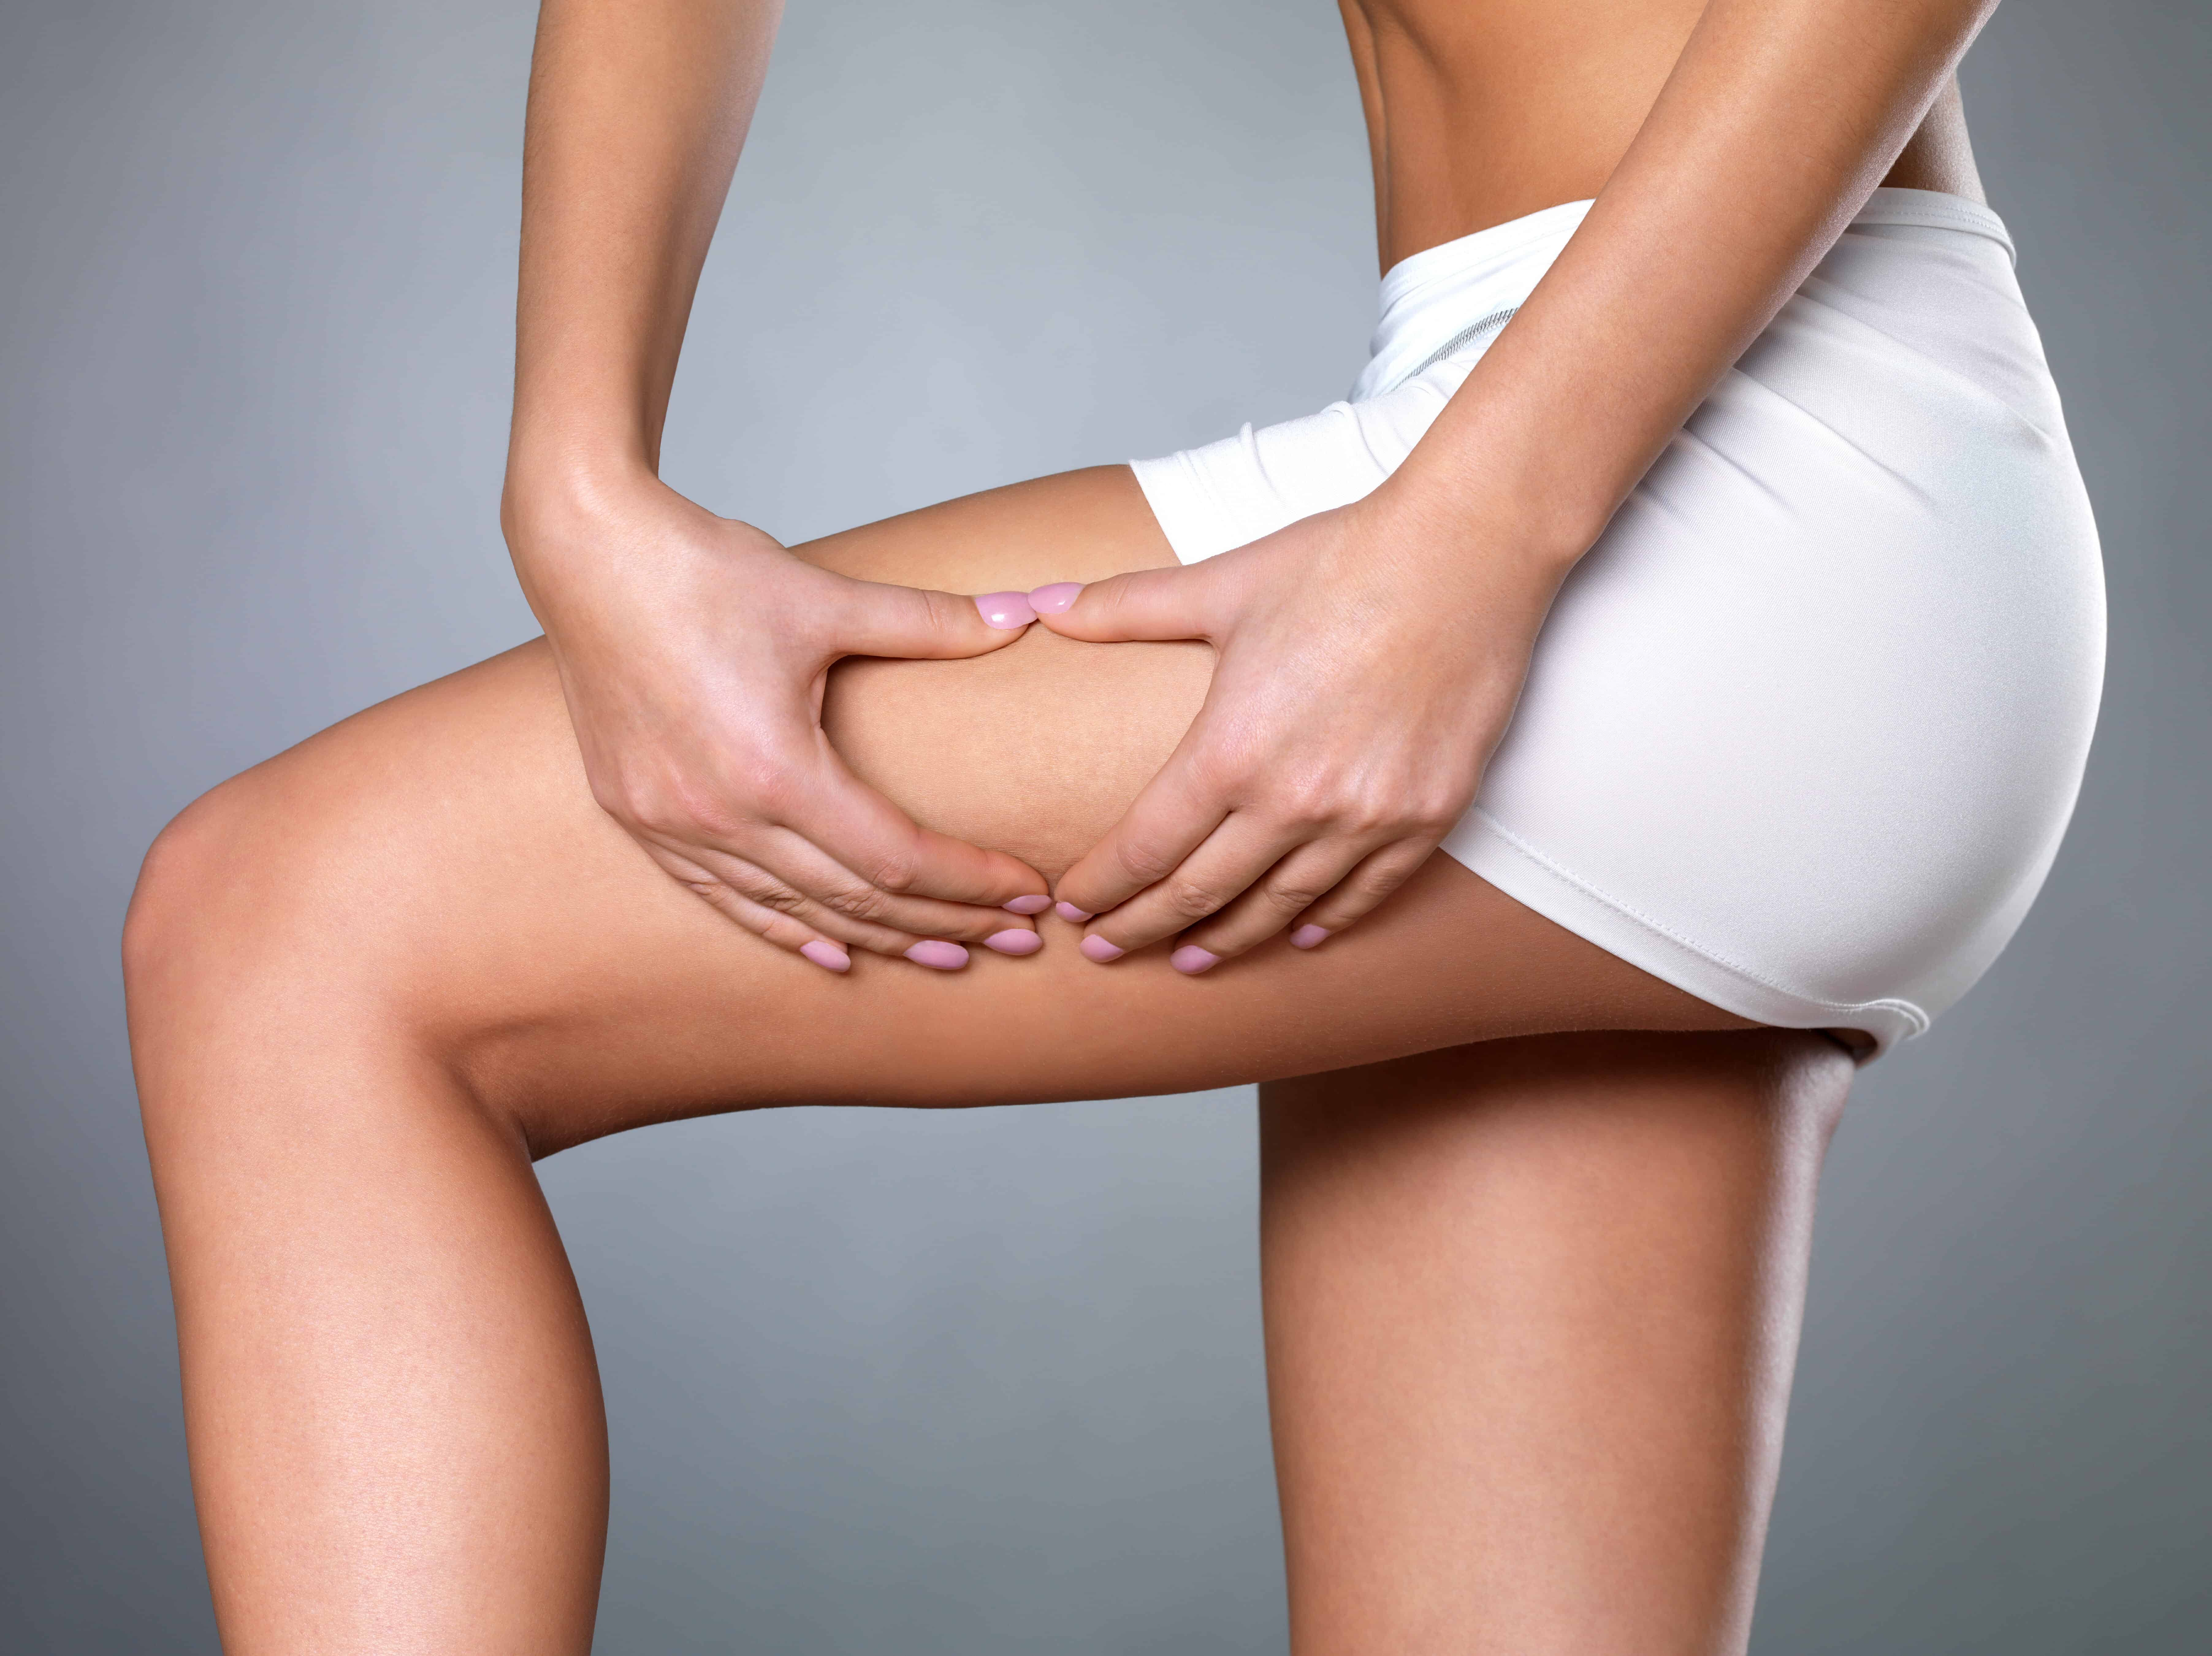 foods that cause cellulite